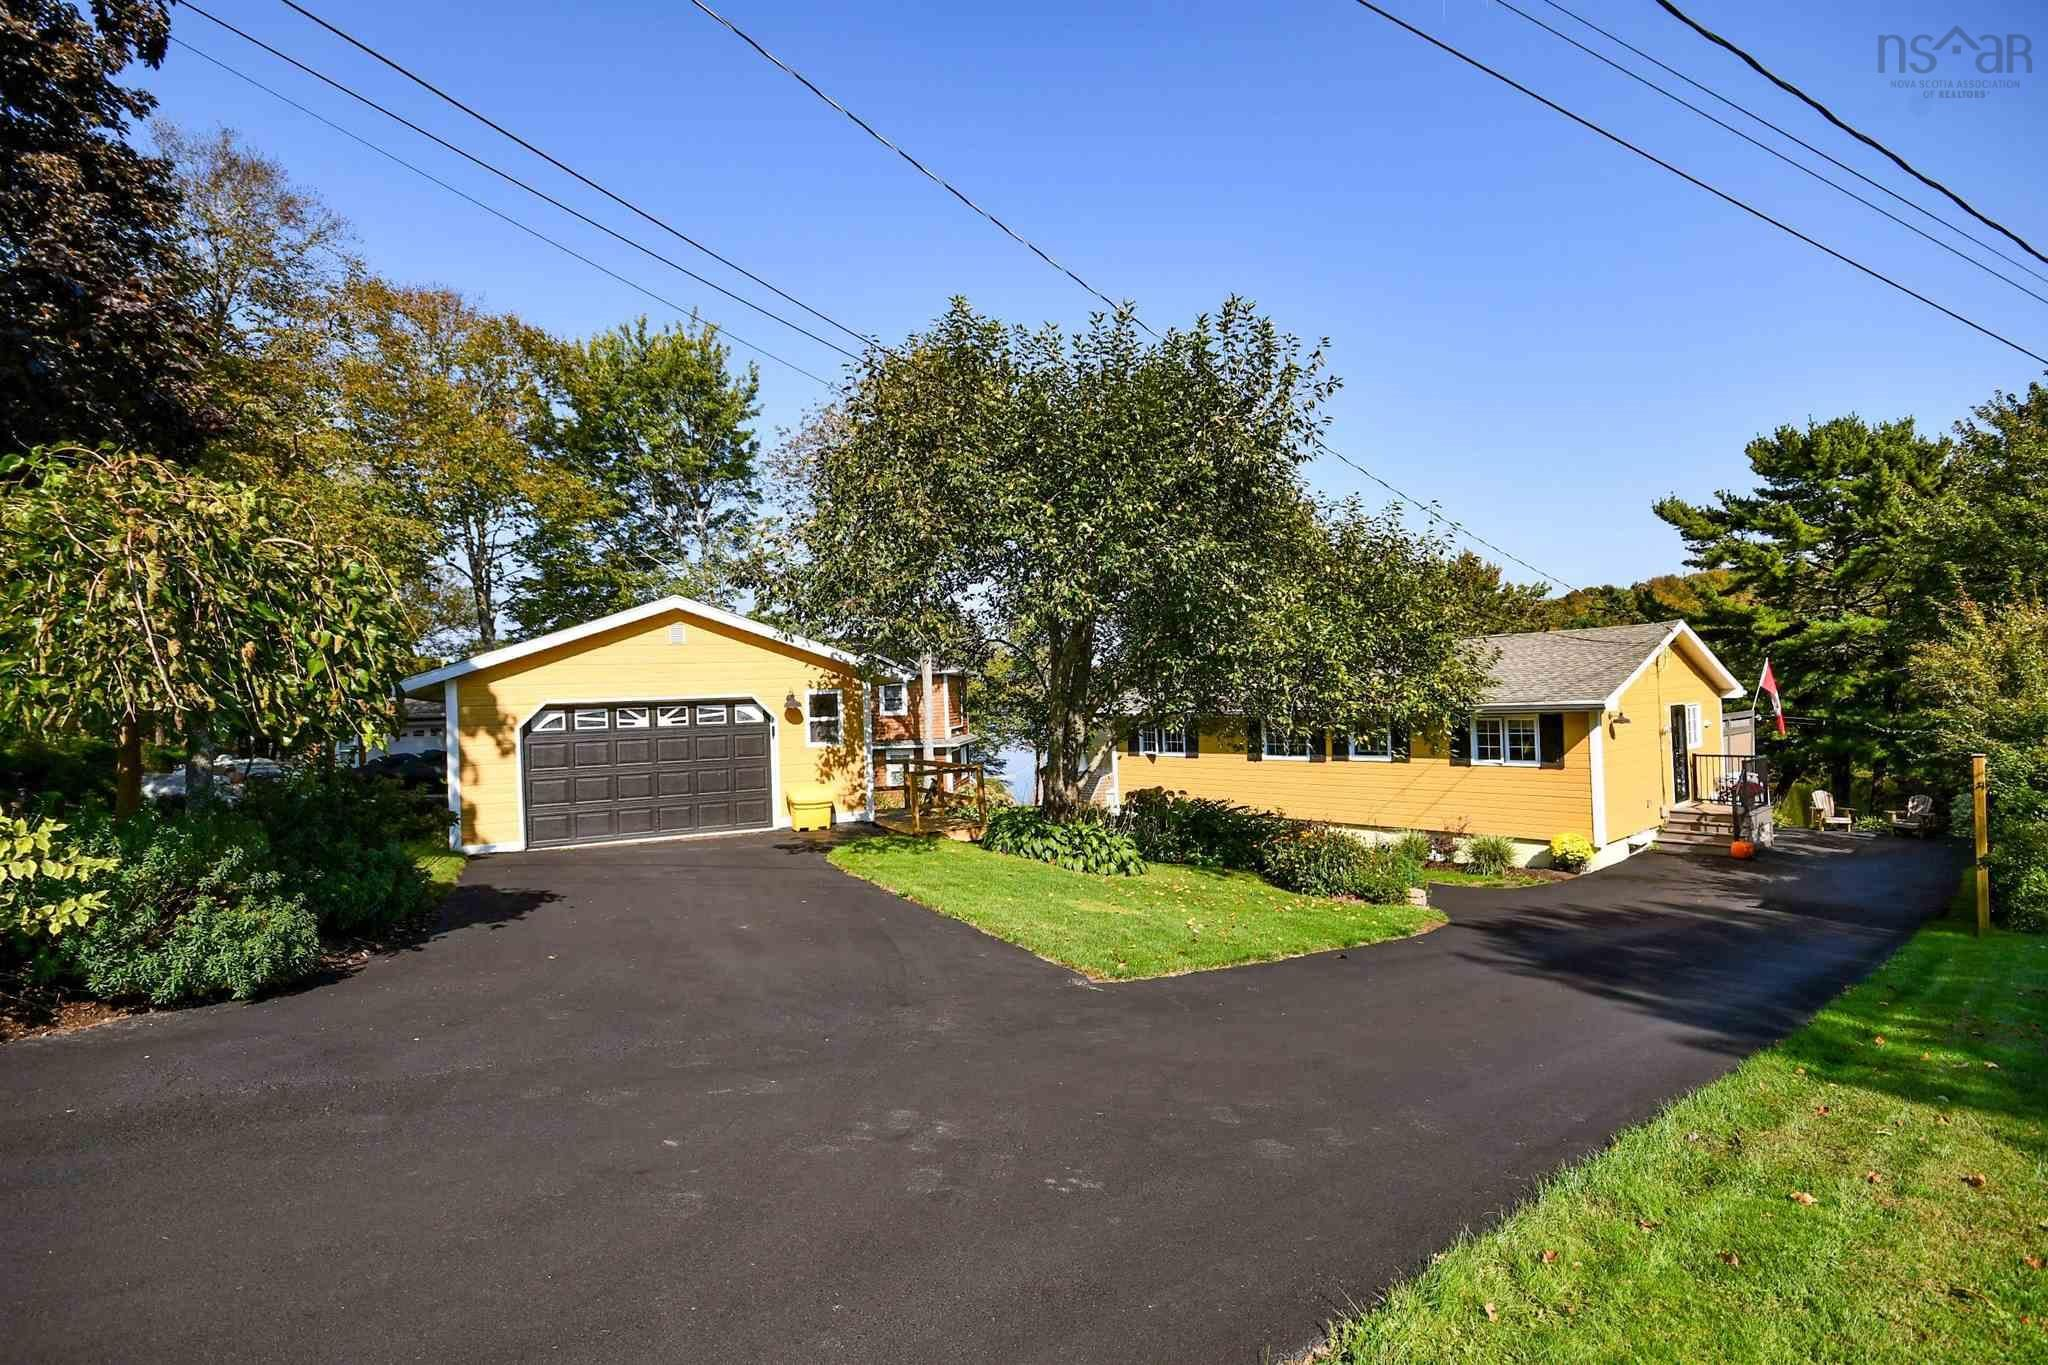 Main Photo: 285 Lockview Road in Fall River: 30-Waverley, Fall River, Oakfield Residential for sale (Halifax-Dartmouth)  : MLS®# 202125479